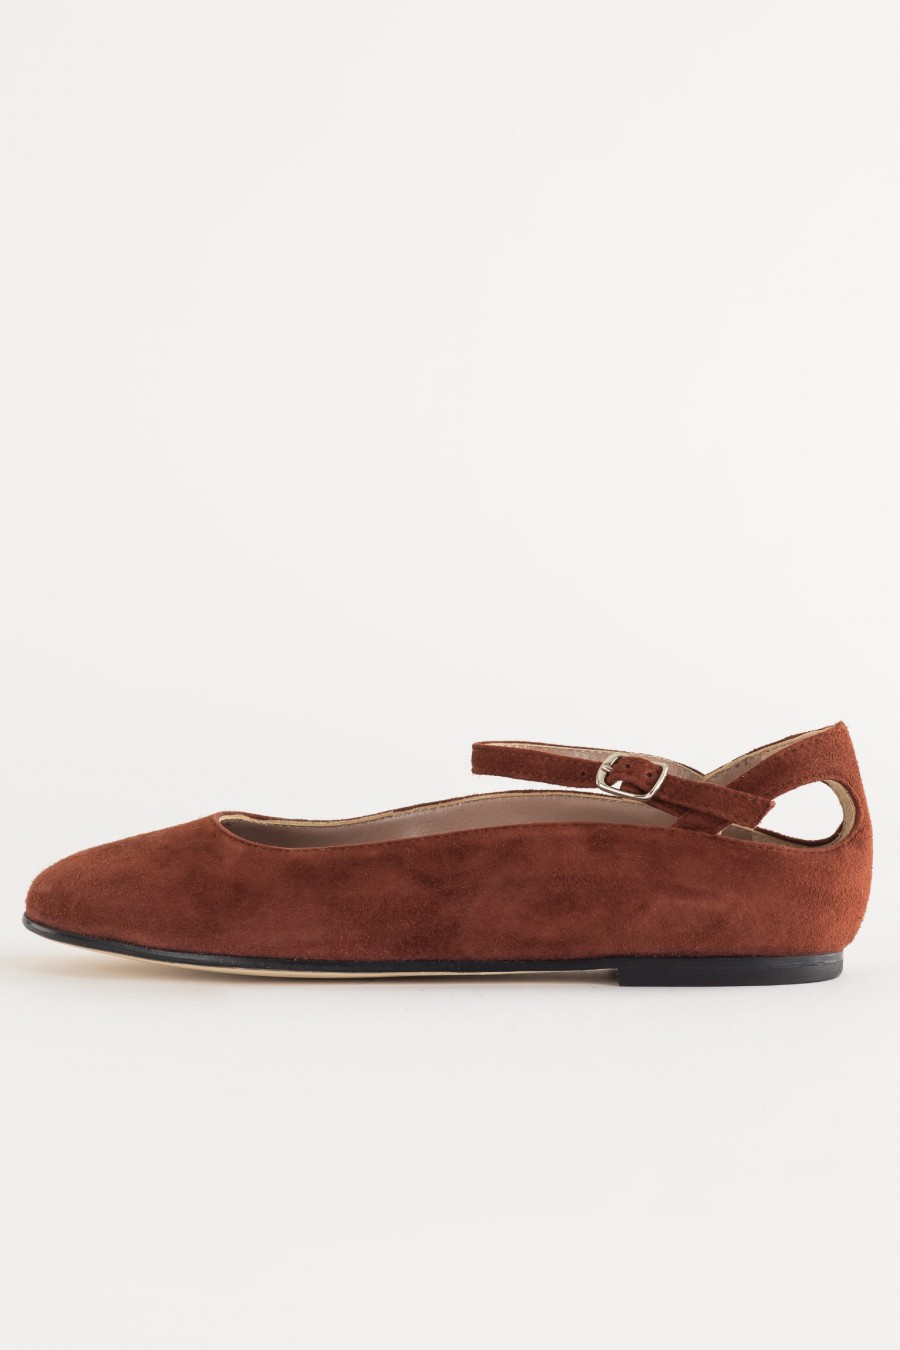 Suede flats with ankle straps